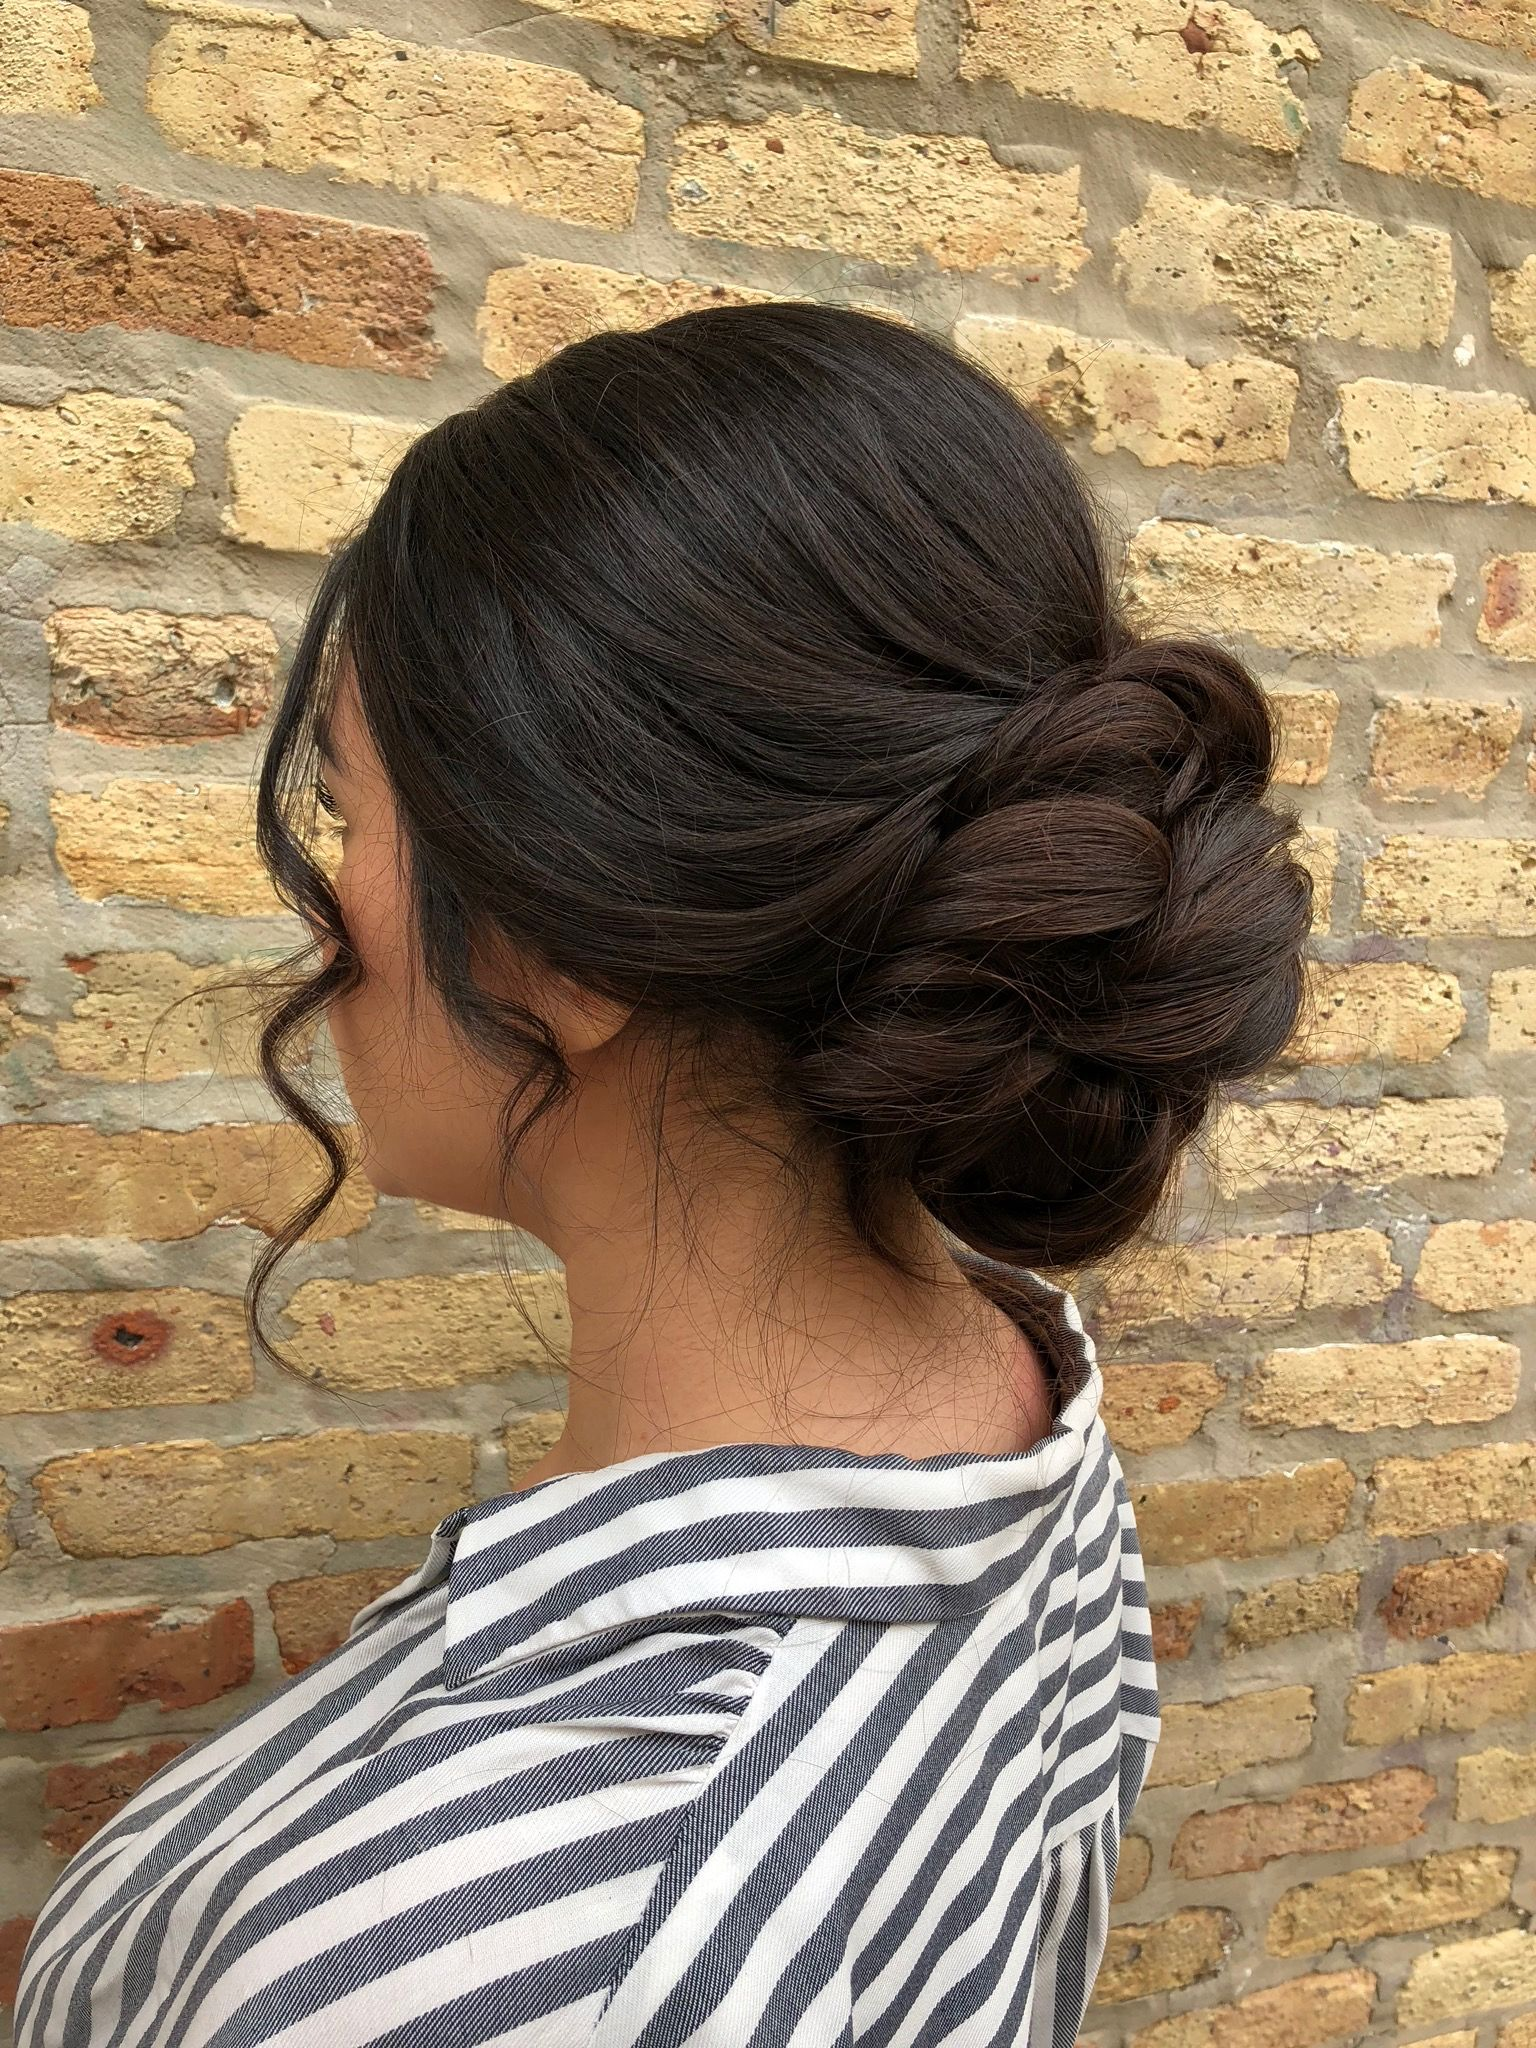 Elegant Swept Back Updo With Low Bun Curly Face Framing Pieces Hair By Goldplaited Hairstyles For P Quince Hairstyles Event Hairstyles Wedding Hairstyles